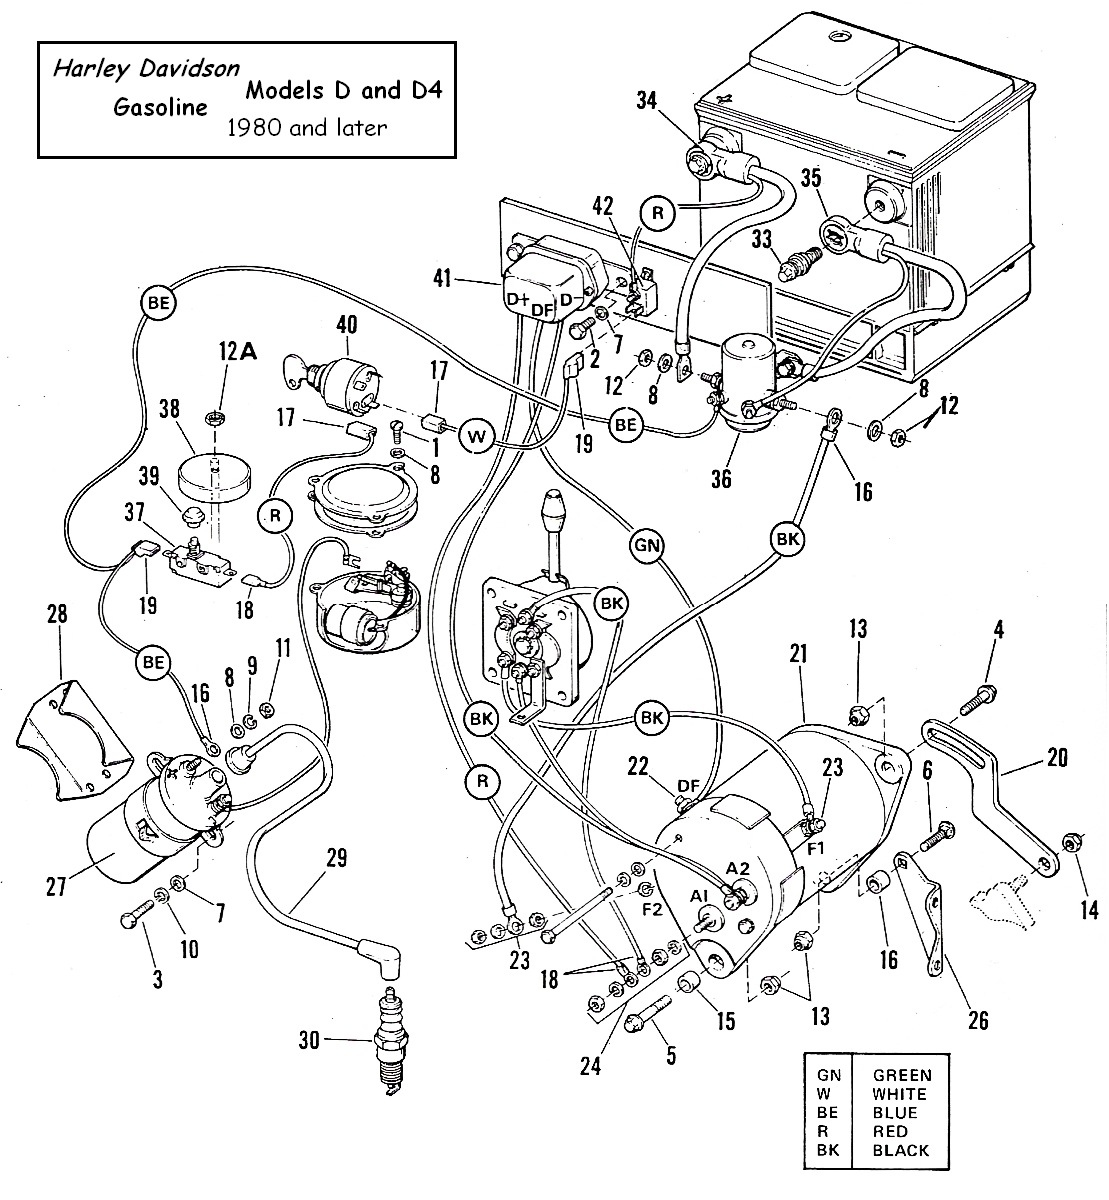 Sevcon Controller Wiring Diagram 32 Images 633t45320 Schematic Diagrams Hg 101resize6652c720